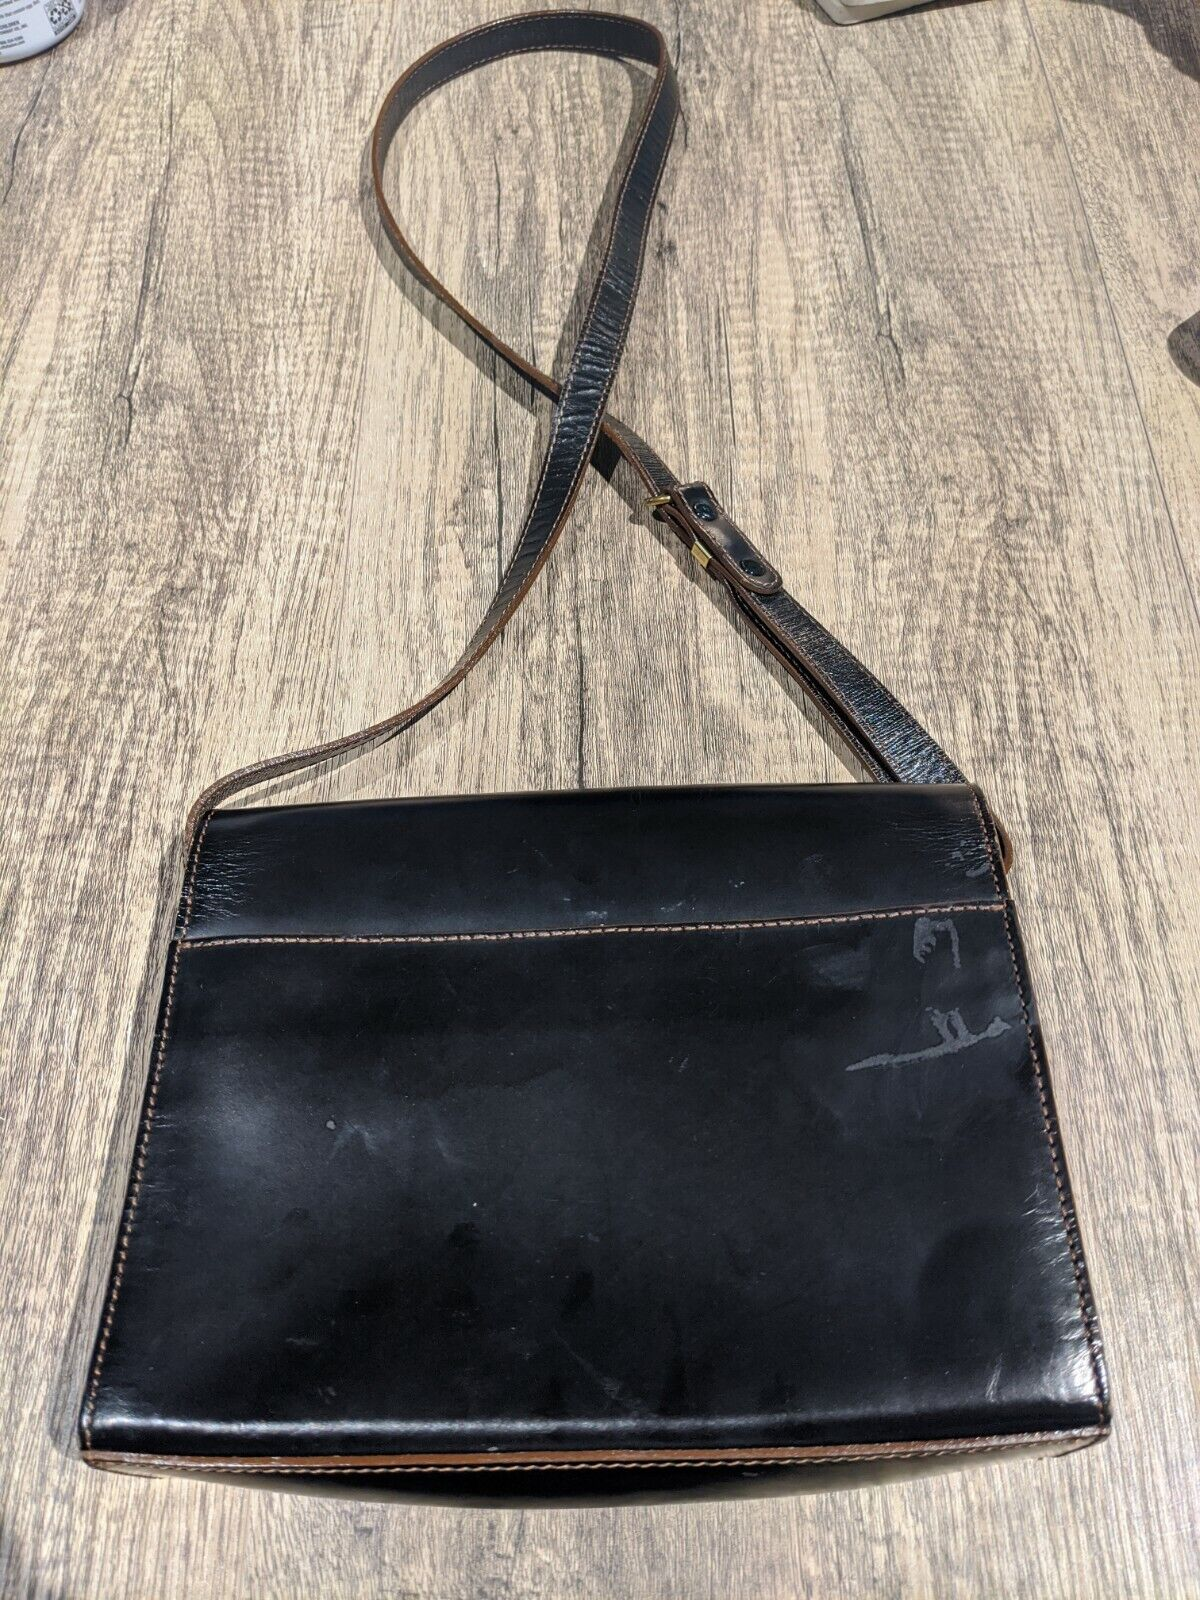 Authentic Marie Claire Black Small Leather Handbag - image 2